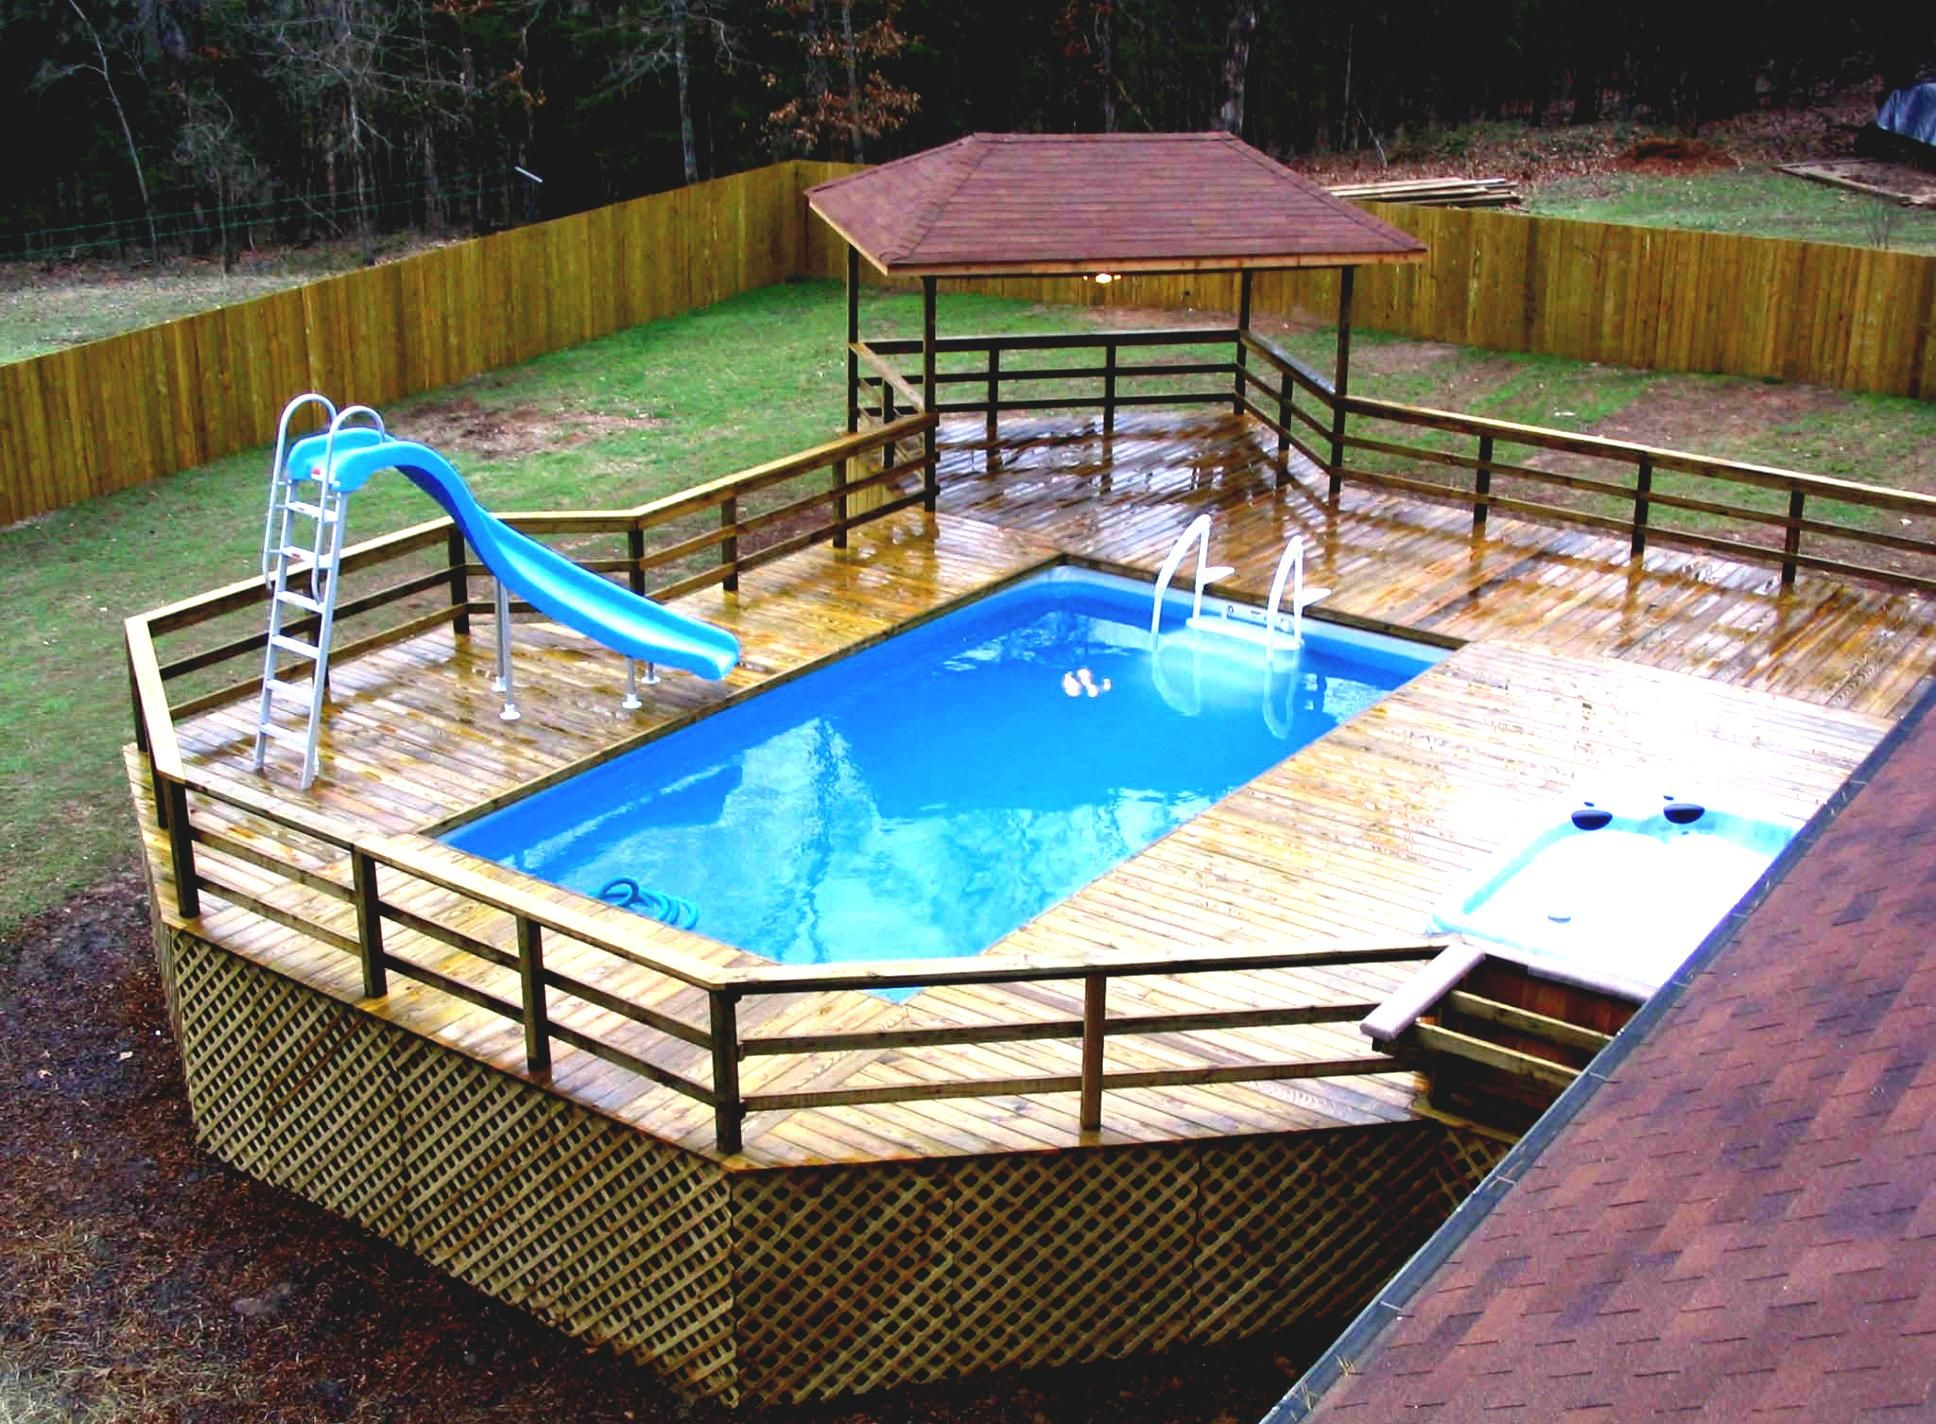 Intex above ground pool landscaping ideas pdf backyard for Pool exterior design